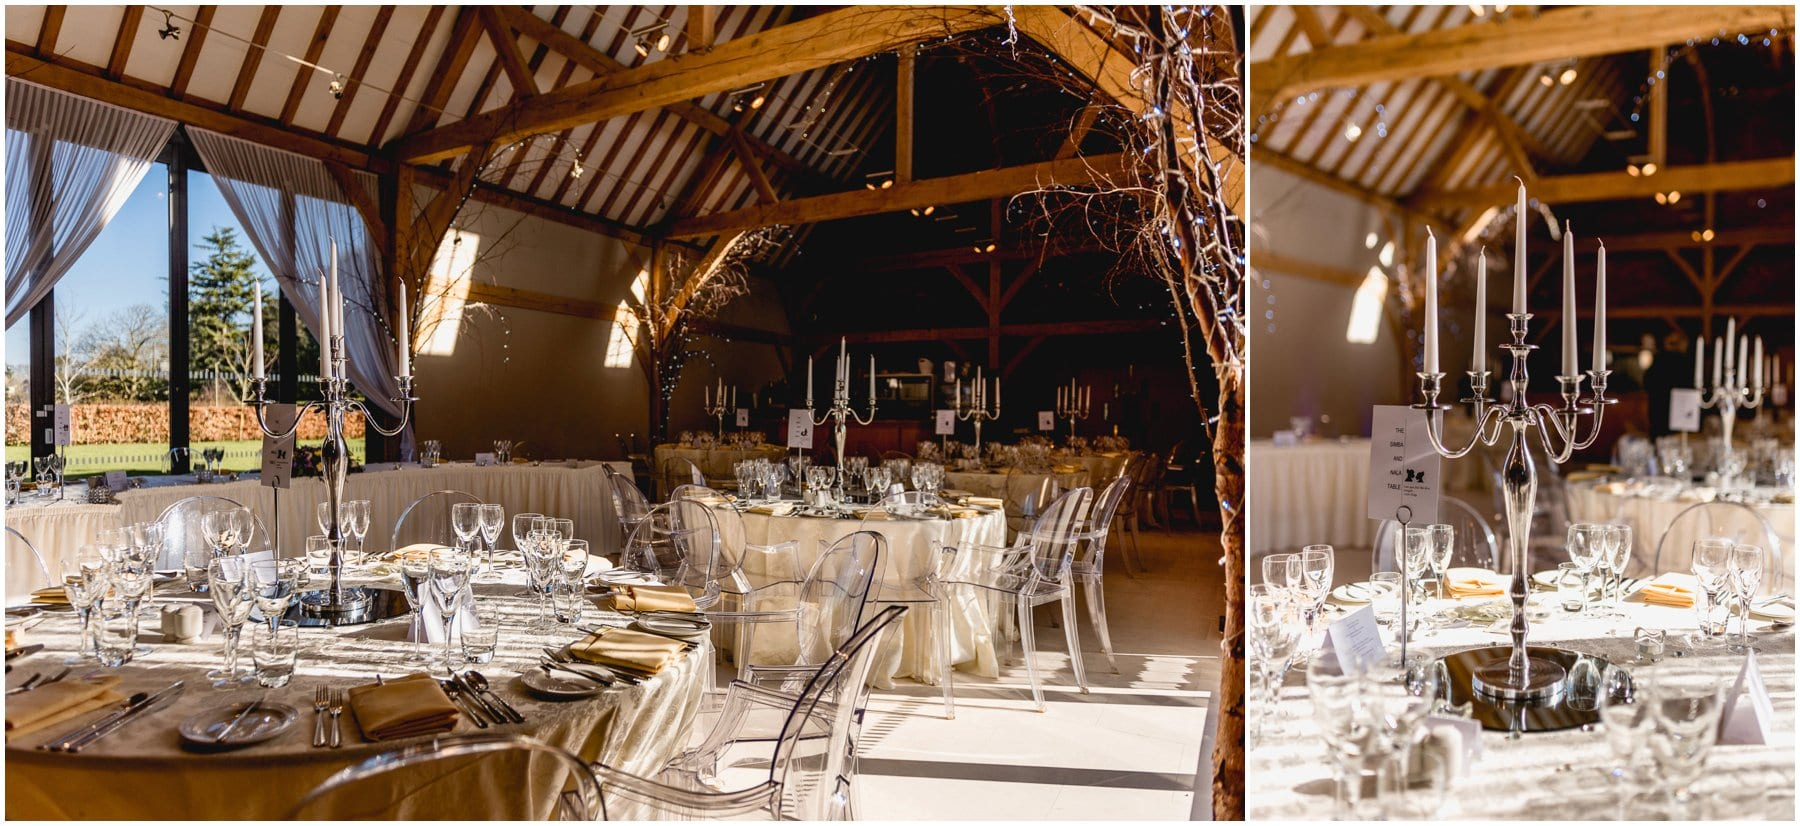 Wedding breakfast room details at Redhouse Barn Wedding Venue.